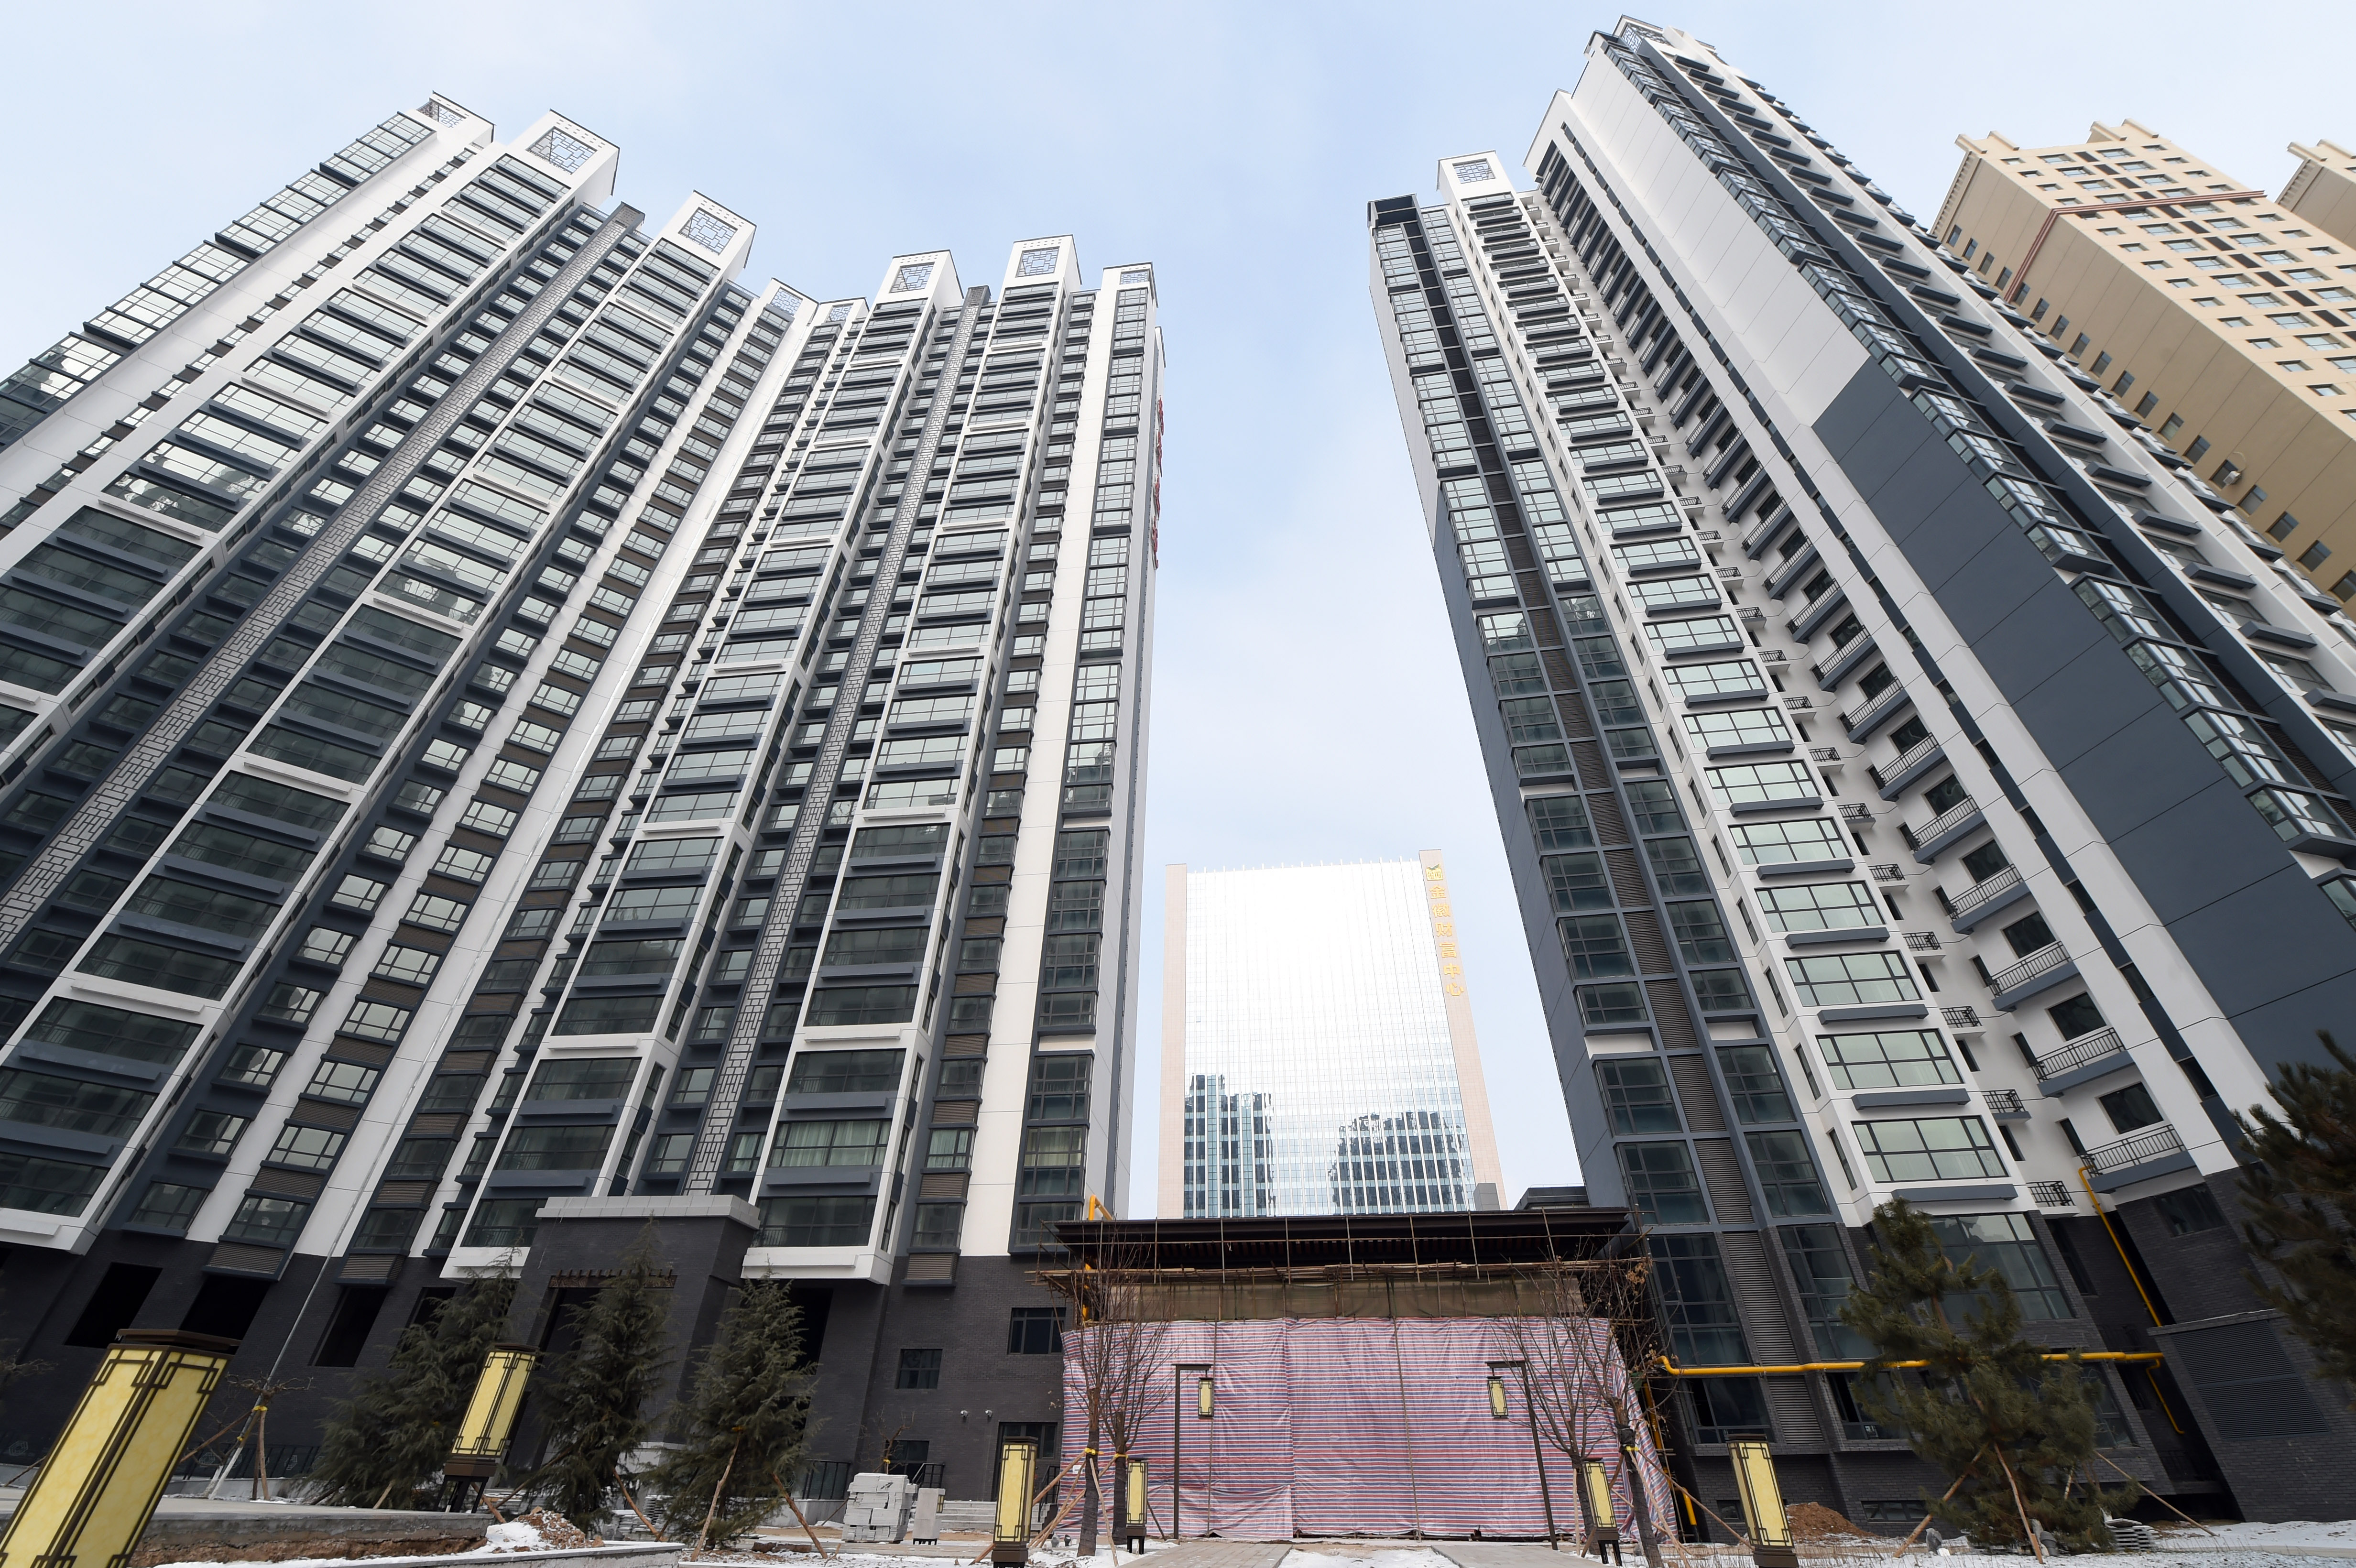 China's resident home purchase leverage down in Q3